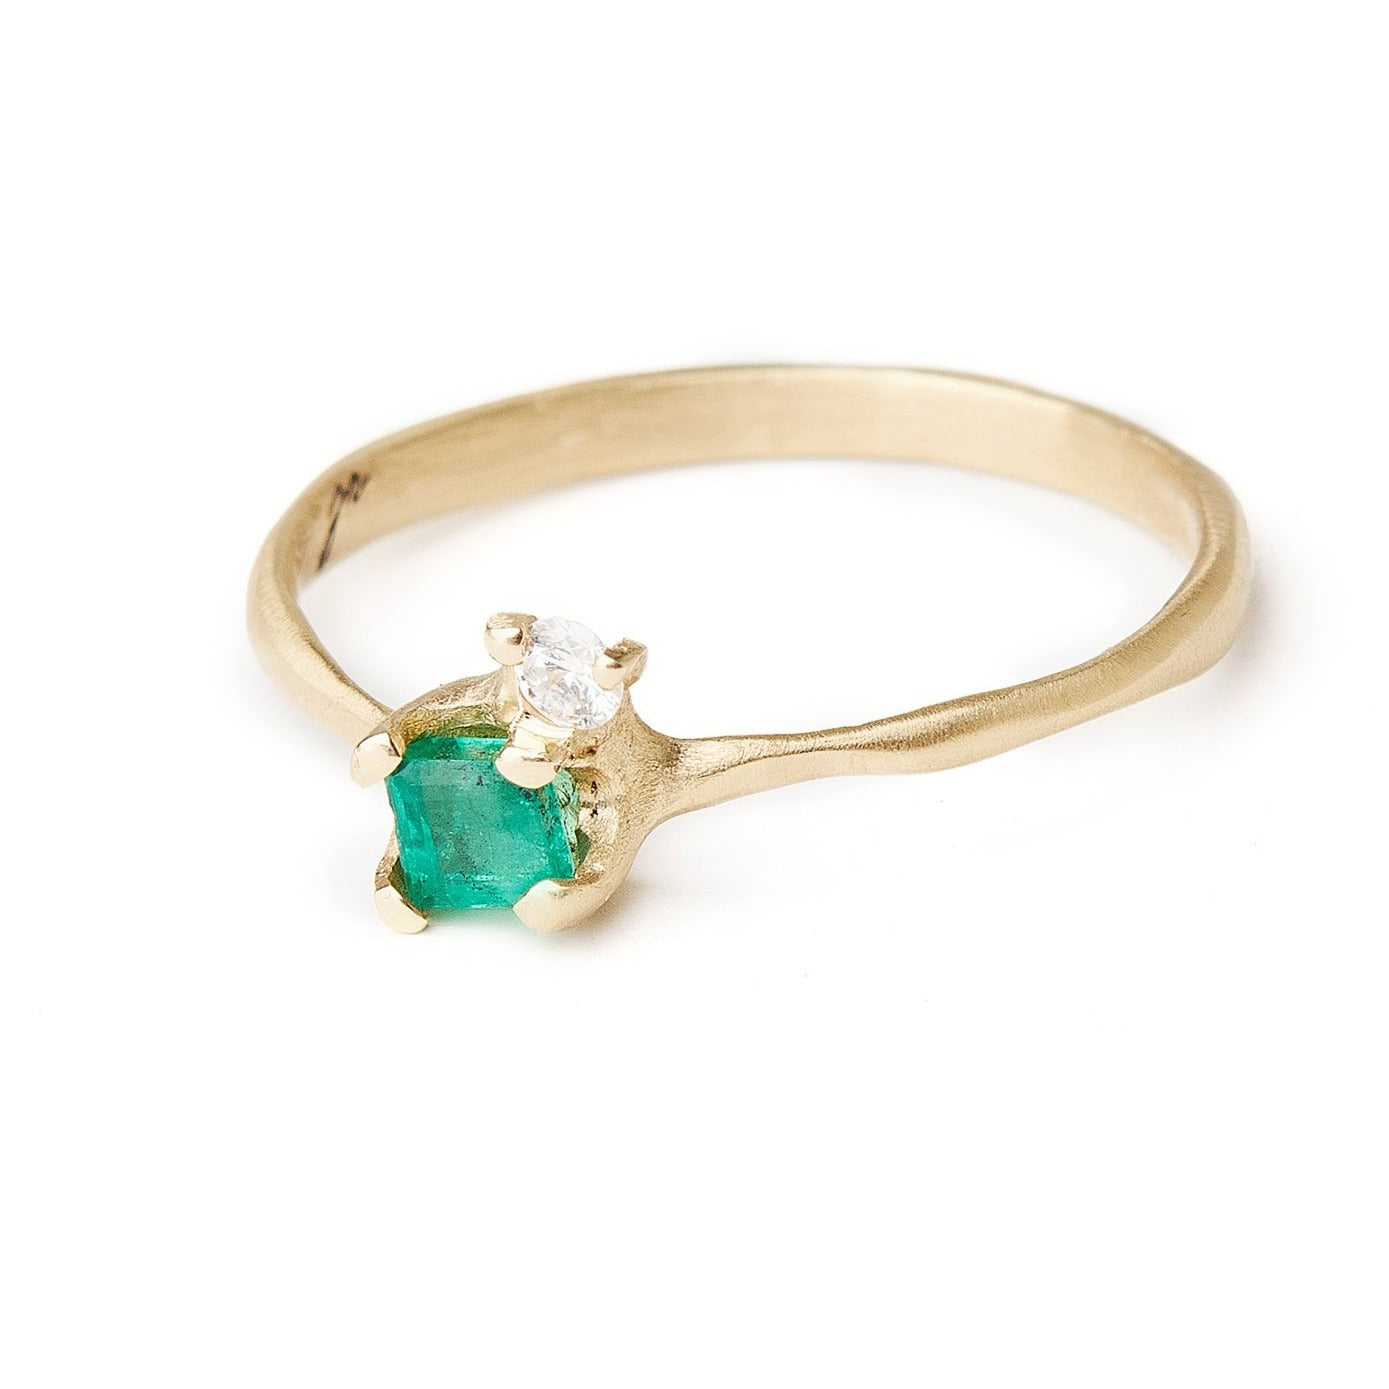 Small delicate emerald and diamond ring off-set diamond. Sweet ring alternative bridal